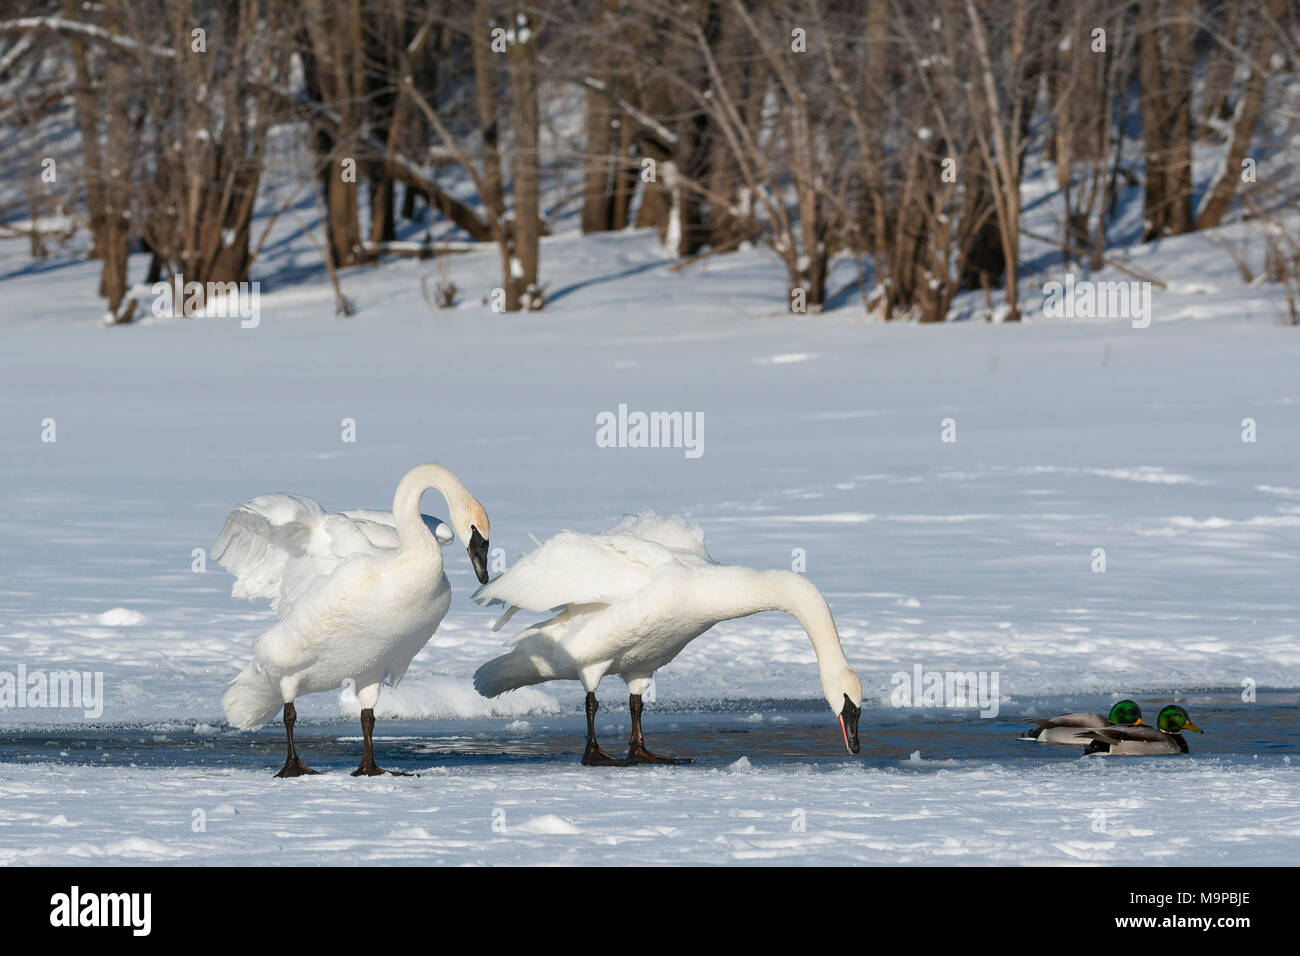 Trumpeter swans (Cygnus buccinator) & Mallard ducks (Anas platyrhynchos) St. Croix River. WI, USA, early January, by Dominique Braud/Dembinsky Photo A - Stock Image